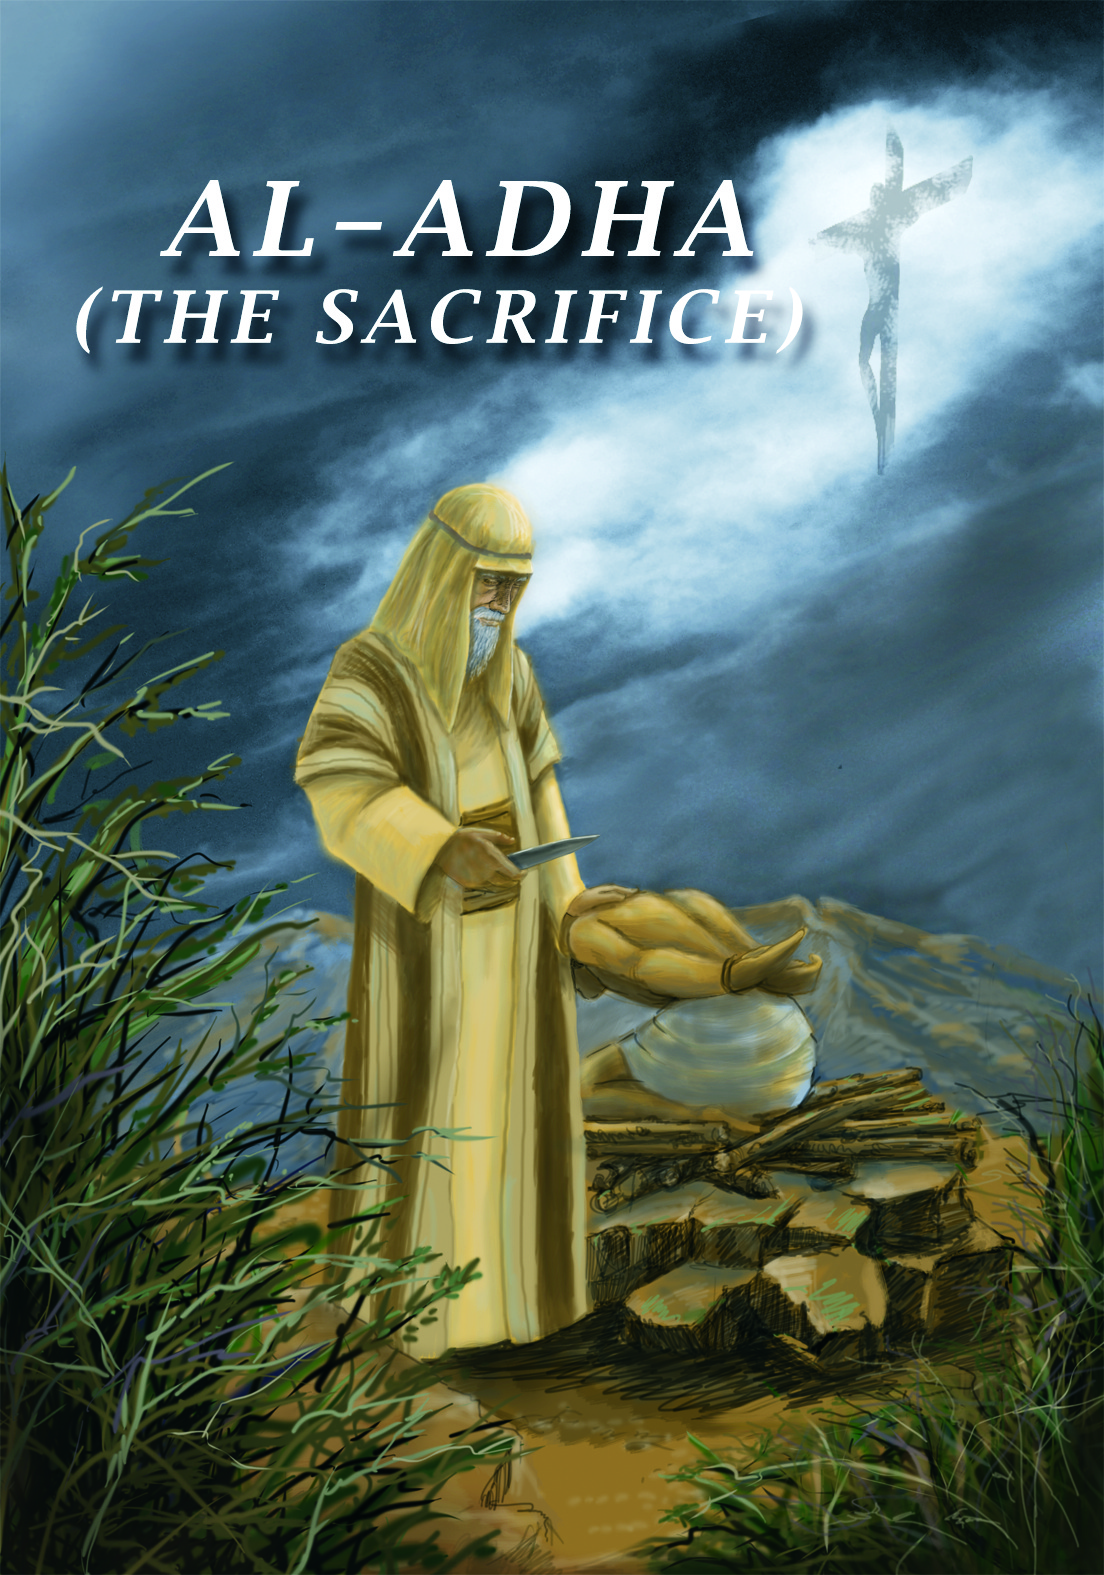 Al-Adha (The Sacrifice)